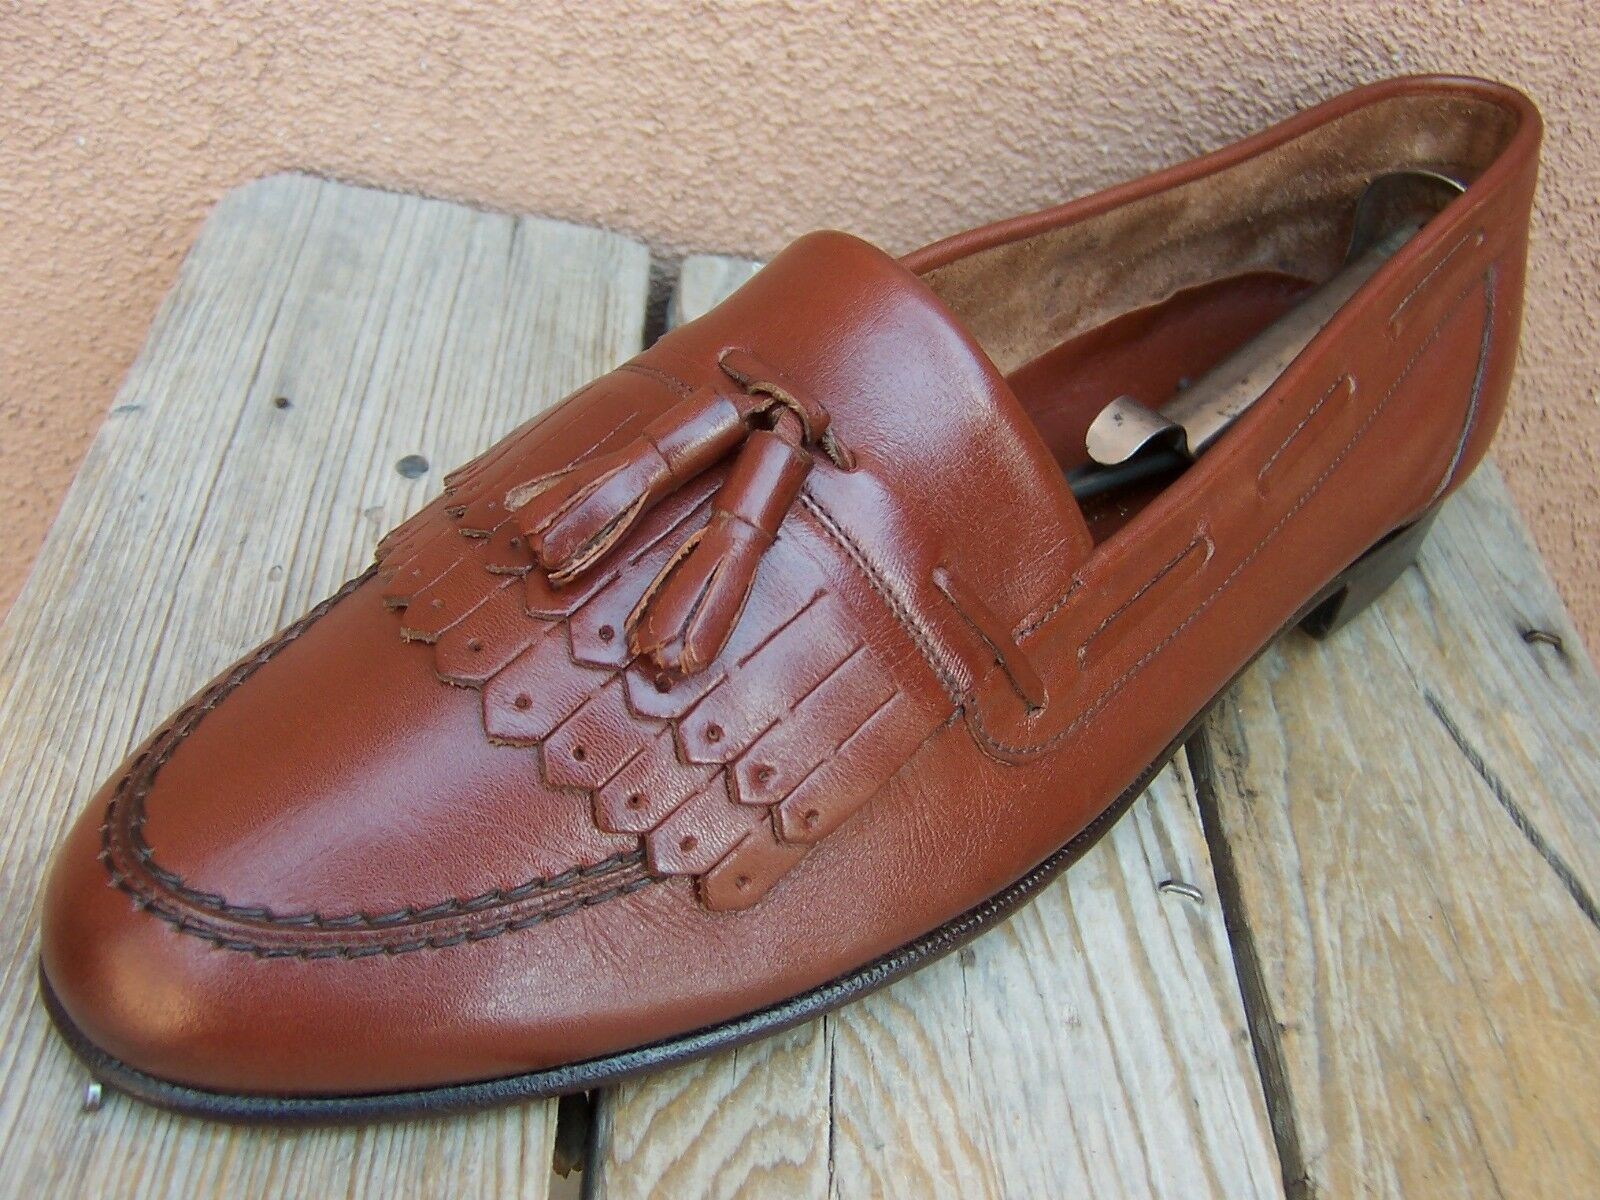 BALLY SWITZERLAND Mens Dress shoes Soft Cognac Leather Tassel Loafers Size 10.5N